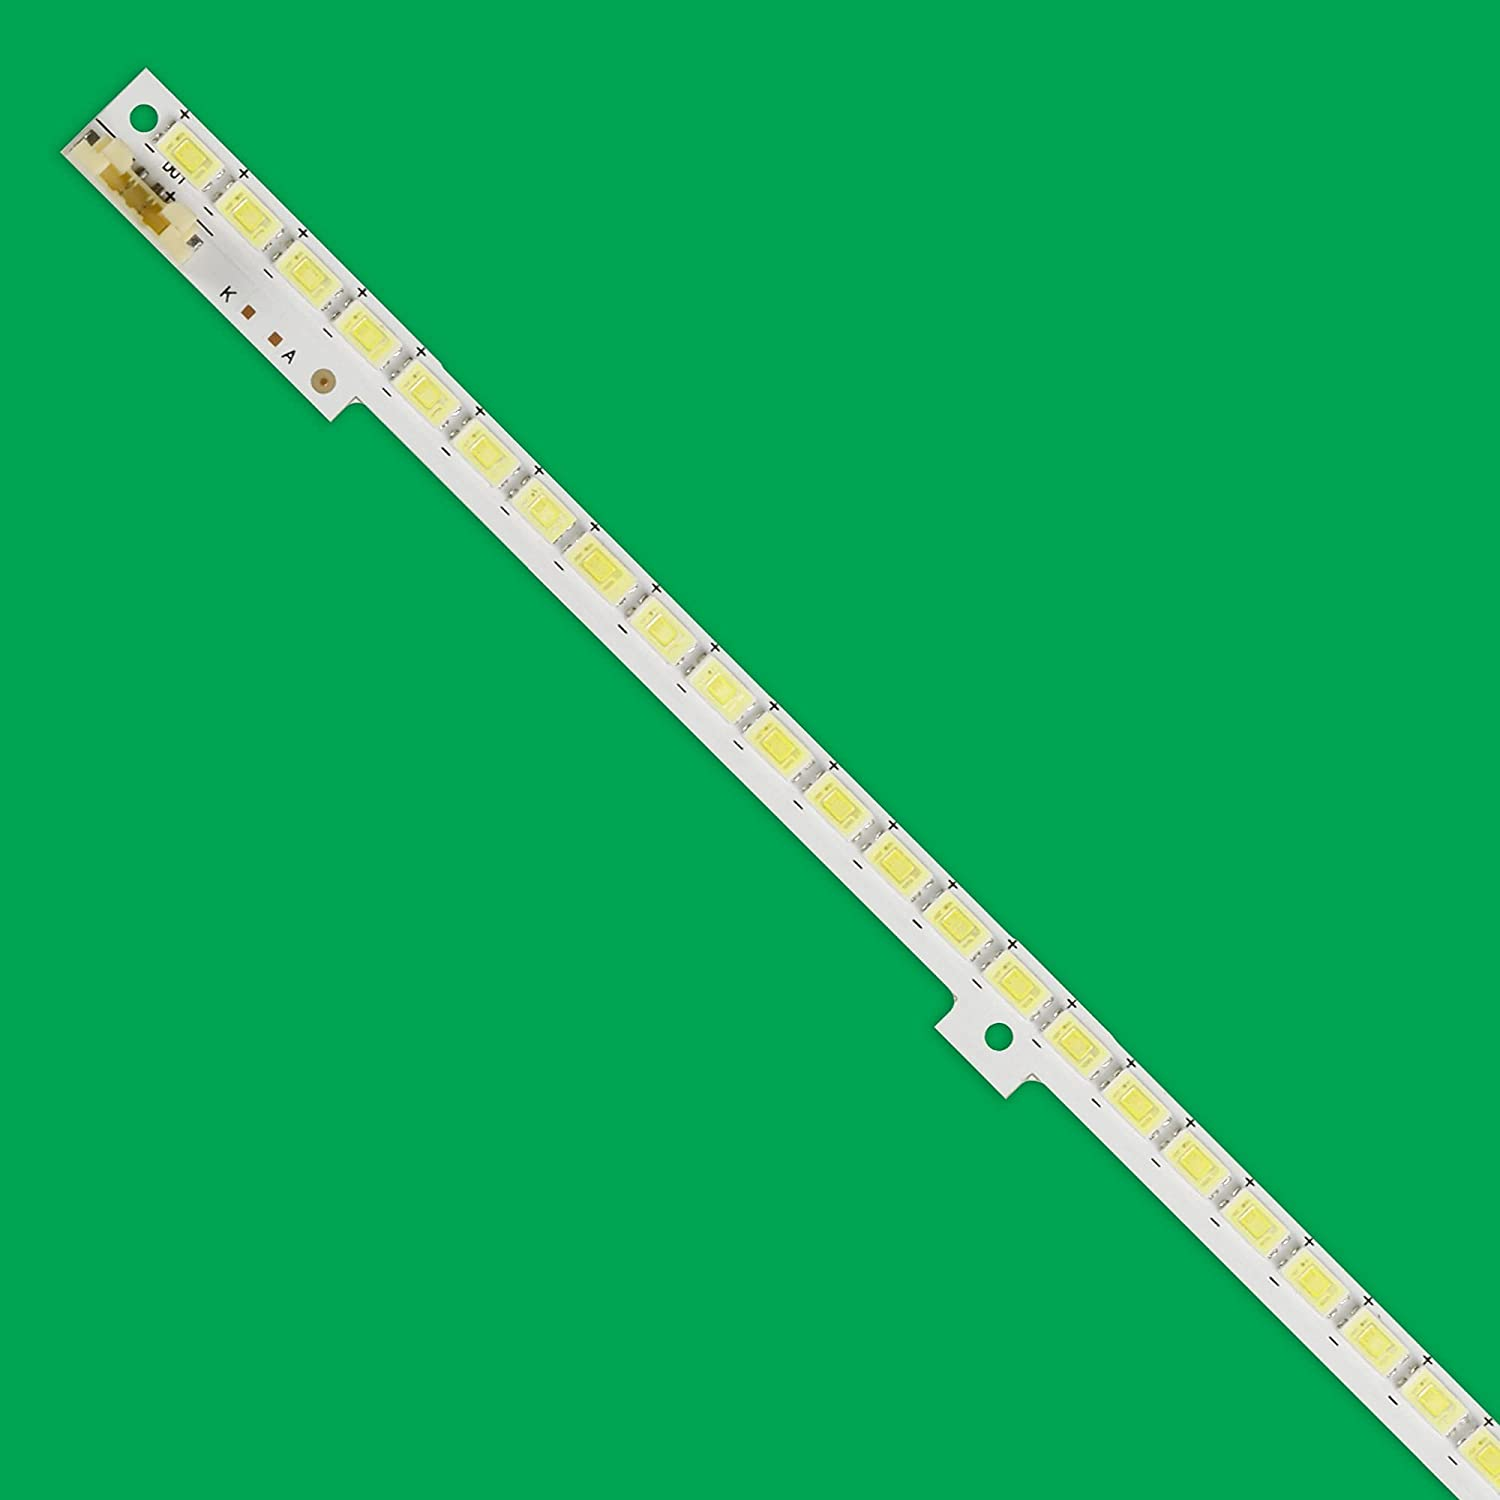 Replacement Direct store Charlotte Mall Part for TV LED Lamp Sams Strip 58leds Backlight